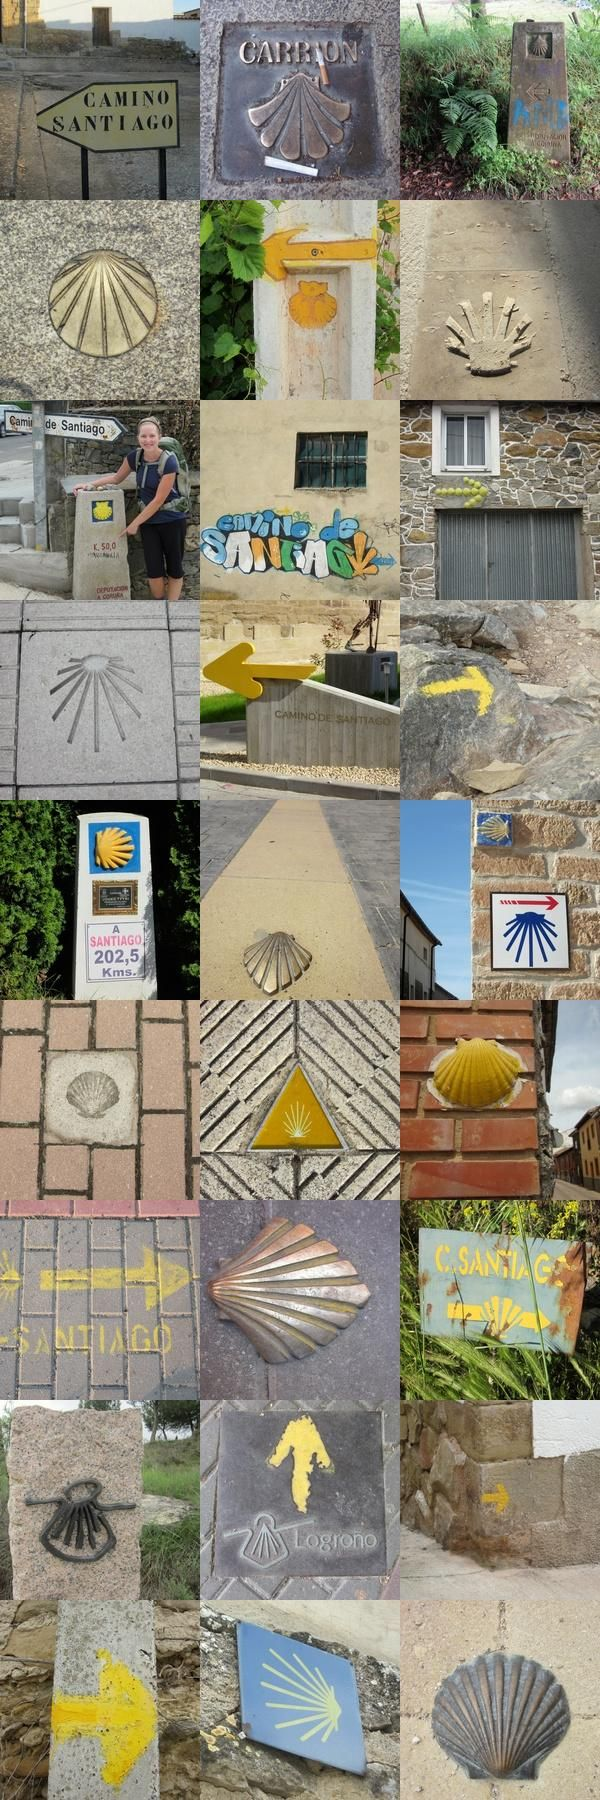 Excellent Guide to the camino